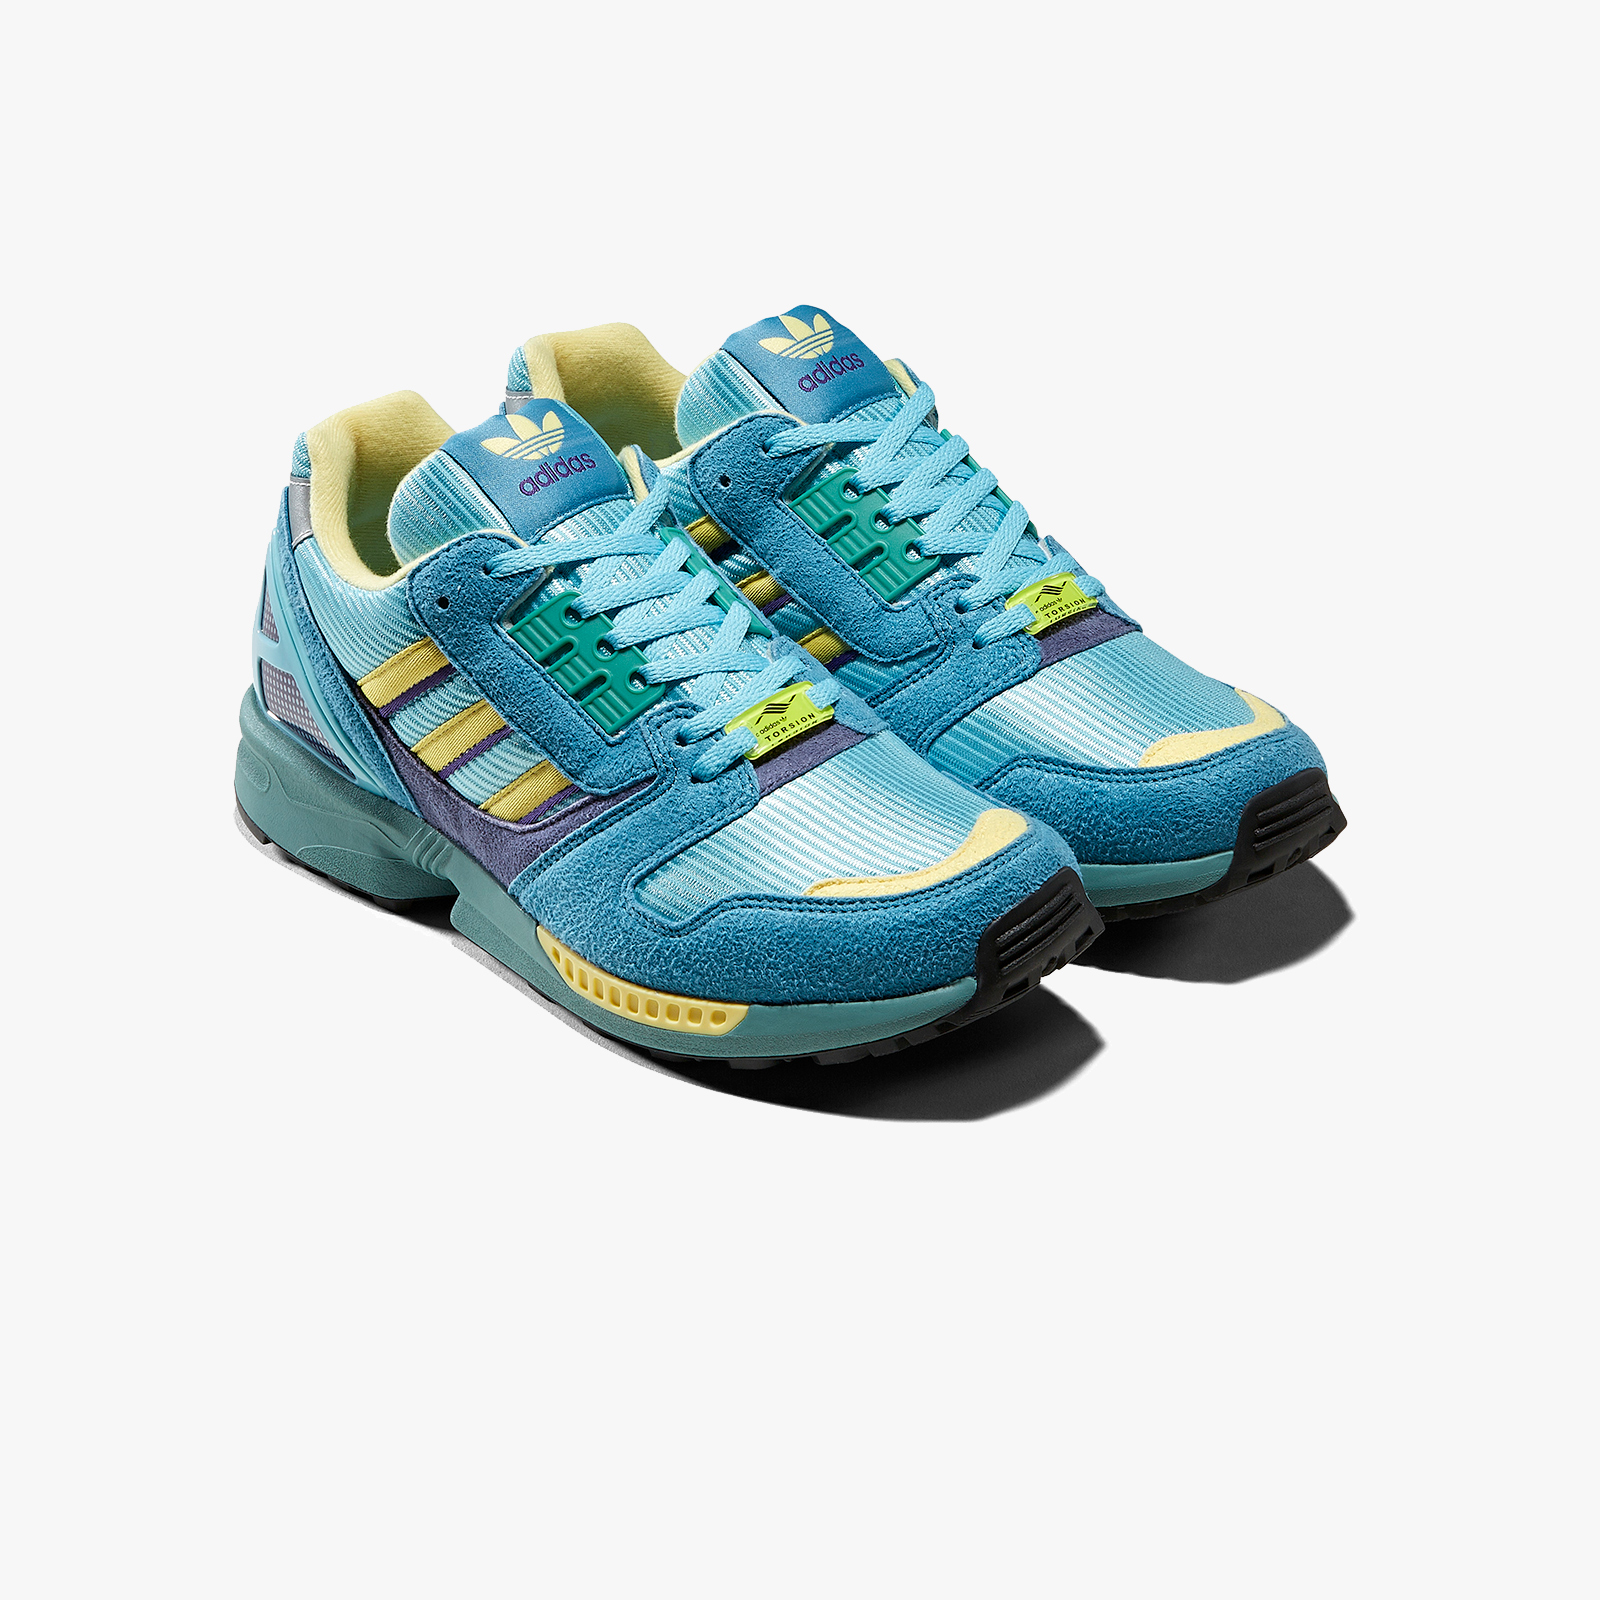 adidas zx 8000 homme